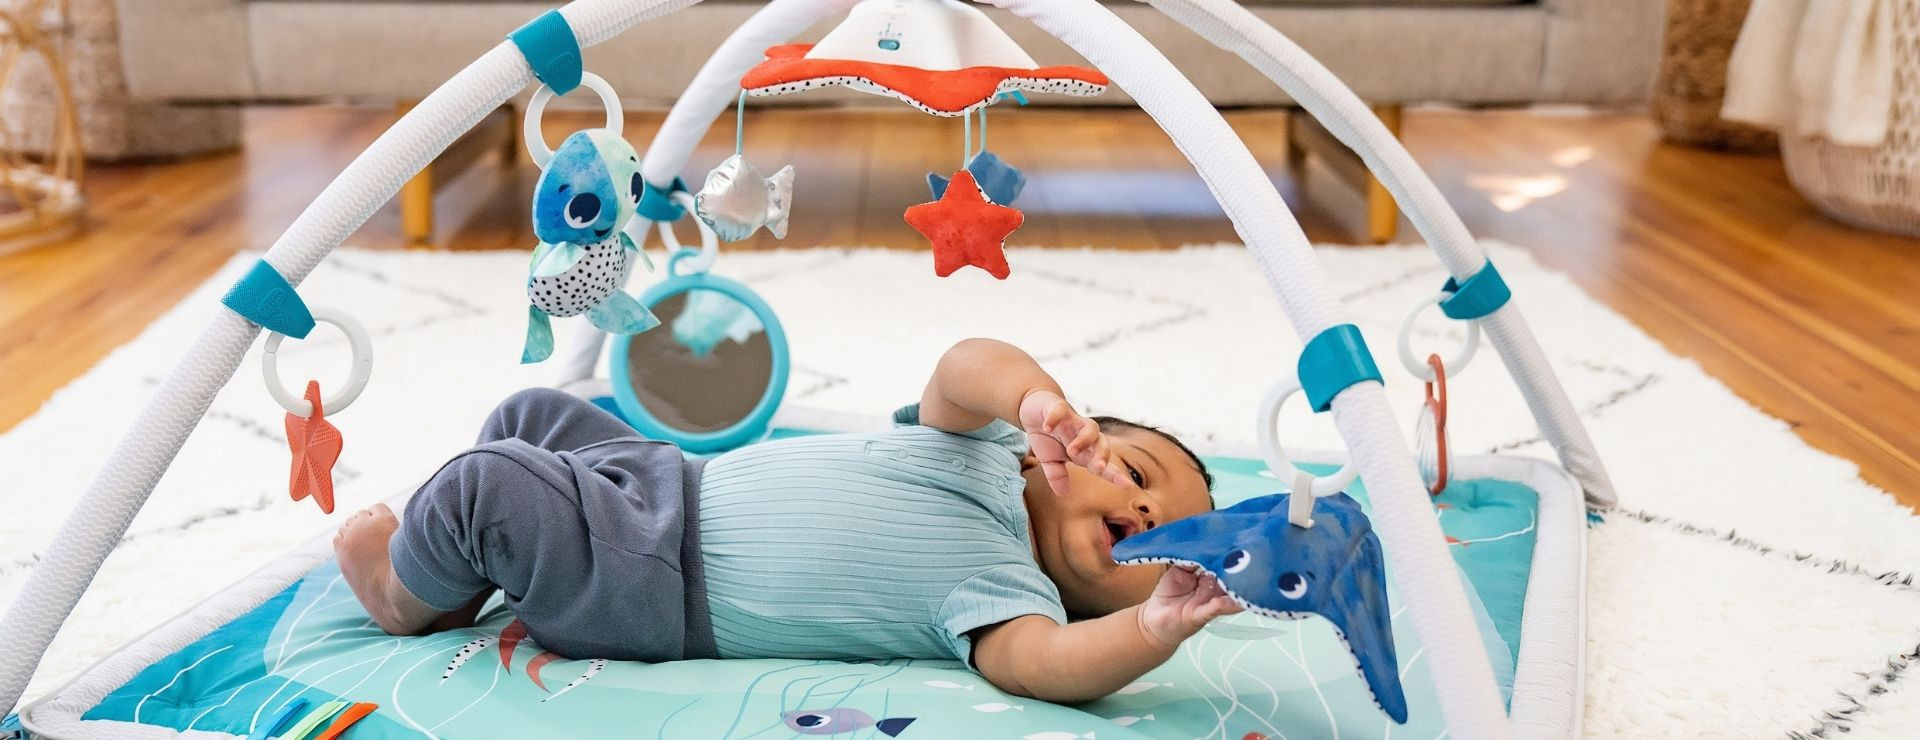 Adorable crinkly manta ray wind chime offers audio stimulation